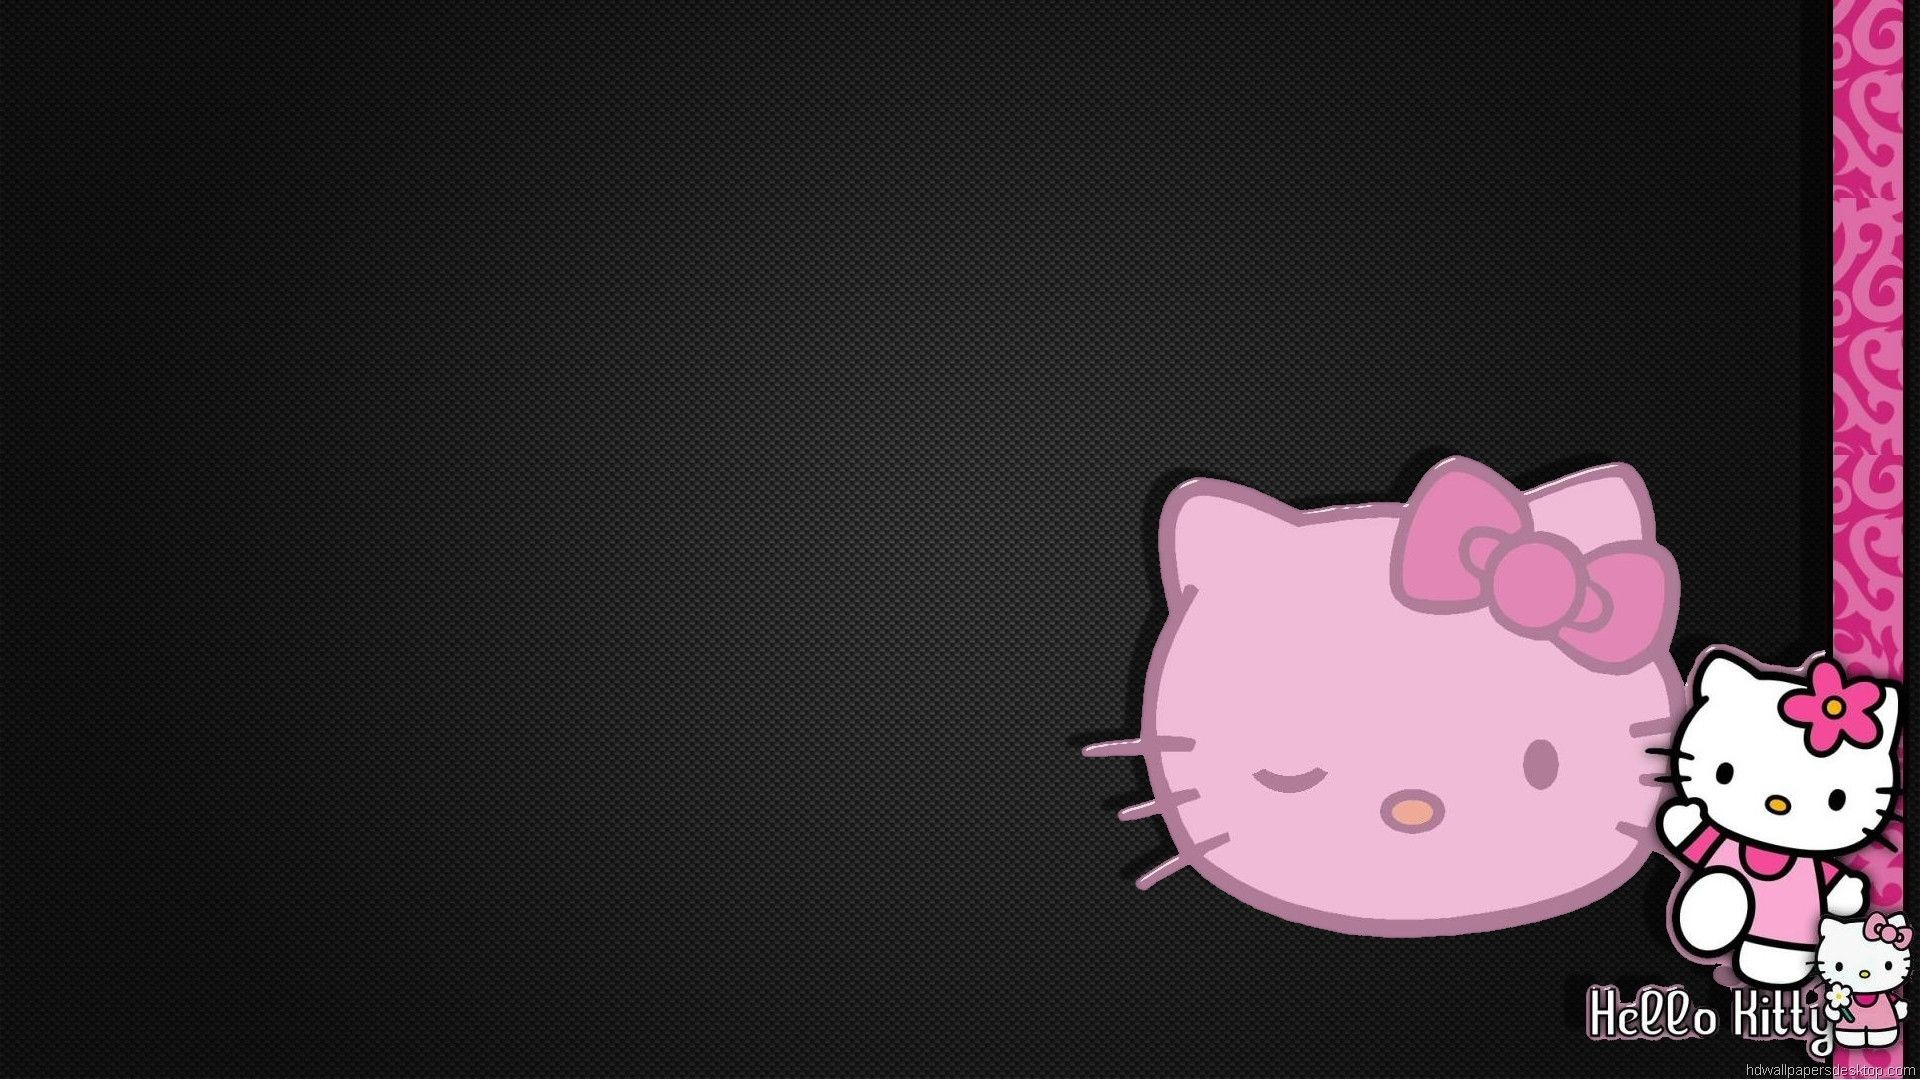 1920x1080 Hello Kitty Black Wallpapers Background As Wallpaper HD